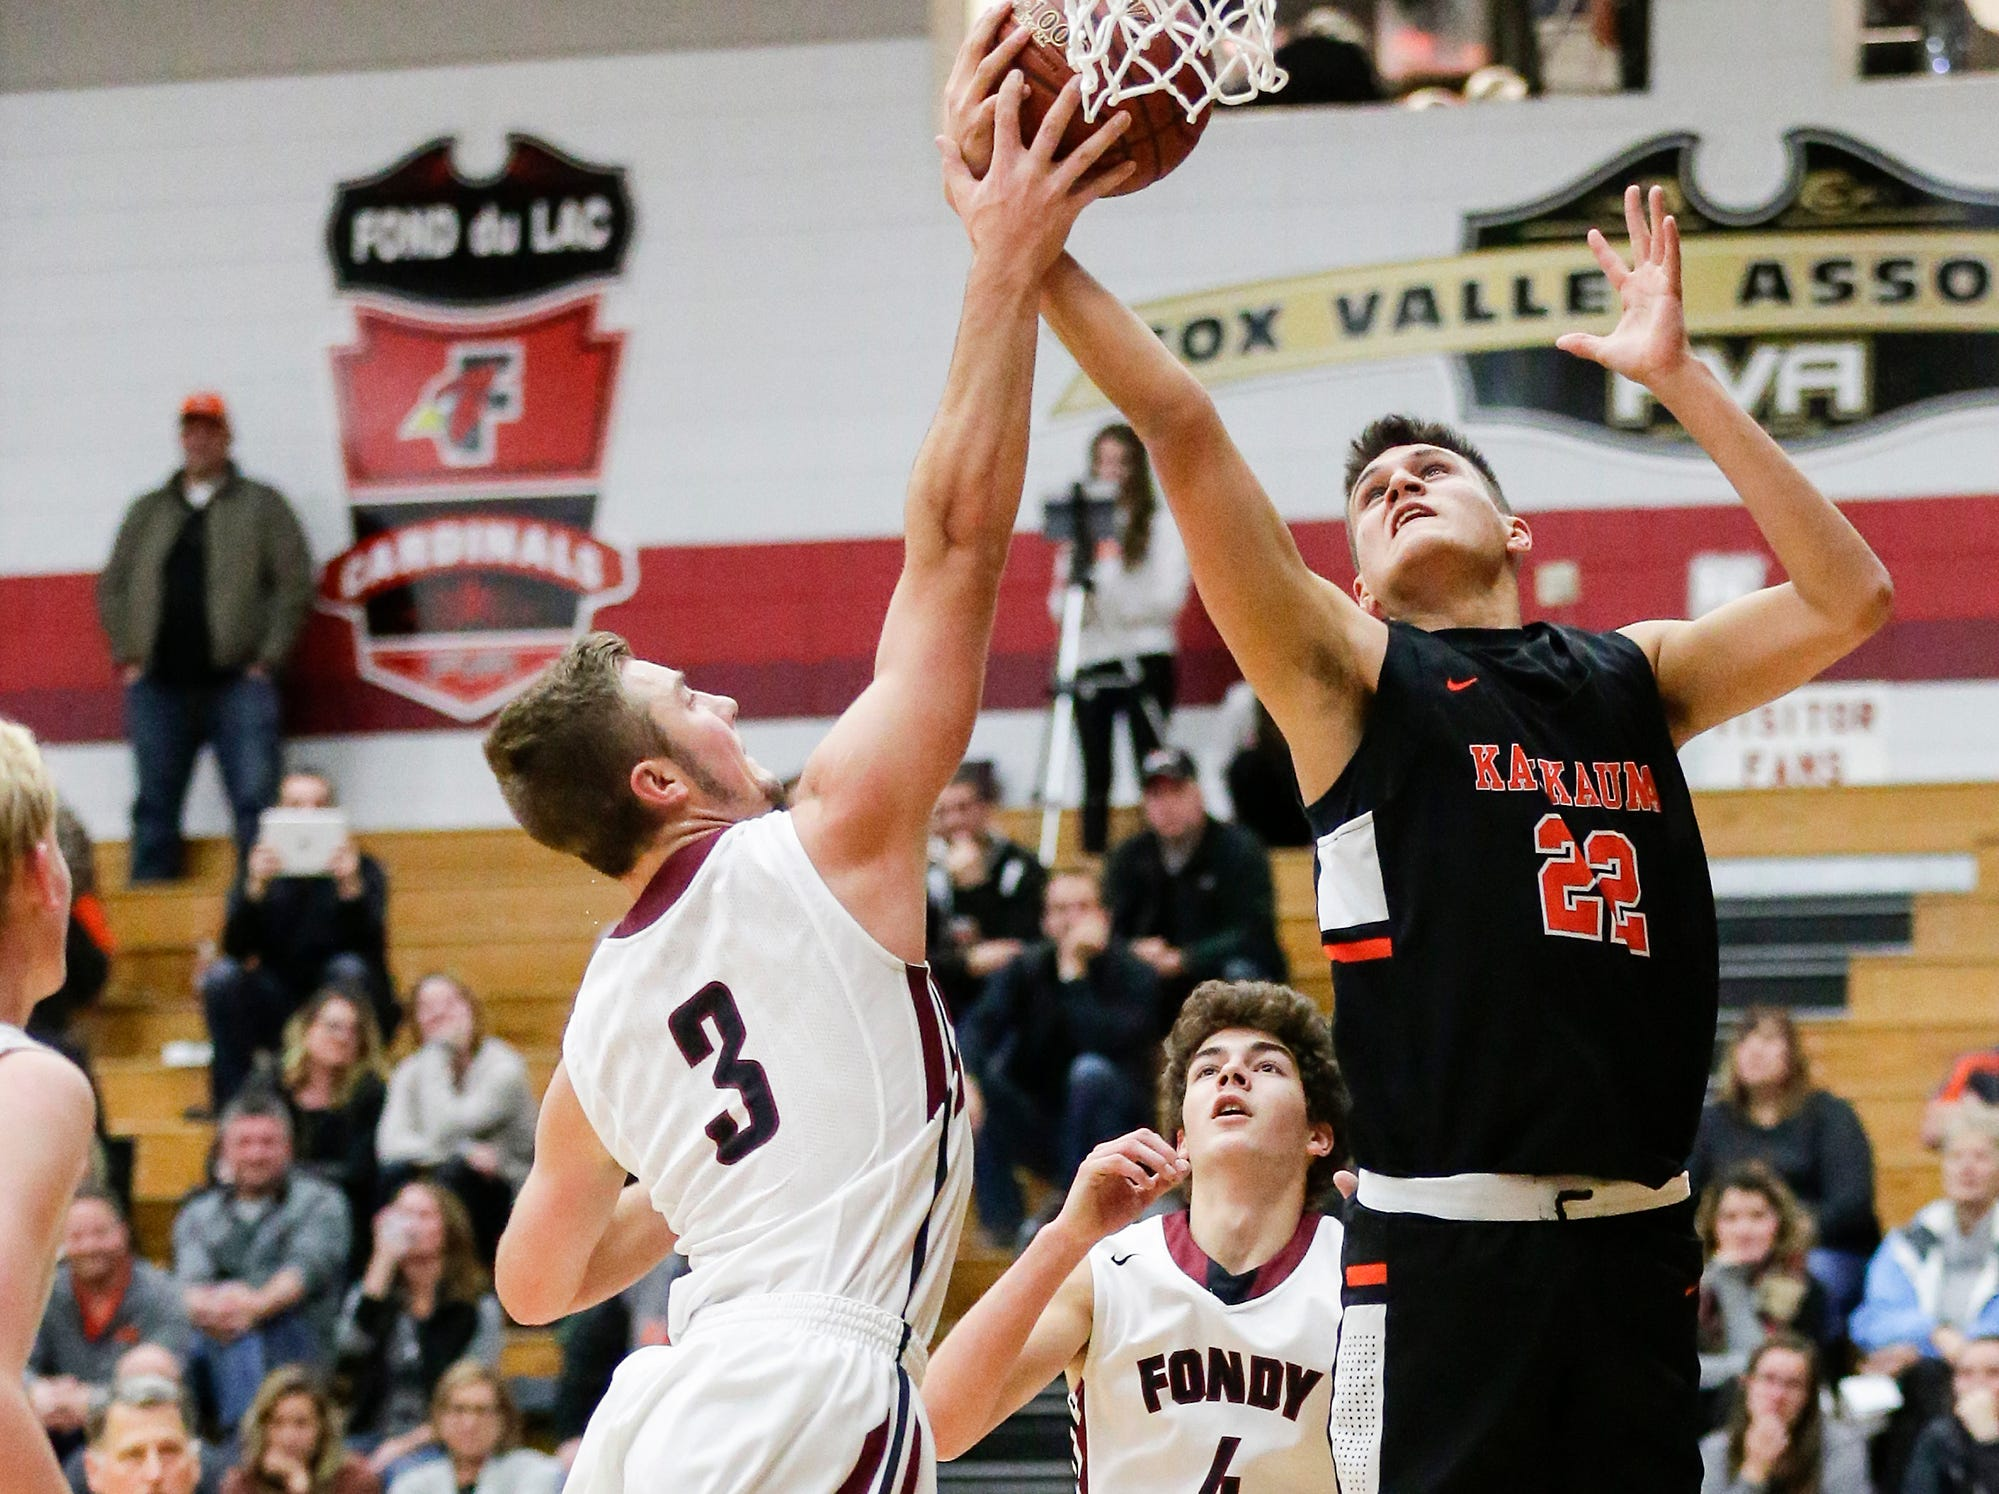 Fond du Lac High School boys basketball's Bryce Holz battles for a rebound with Kaukauna High School's Jacob Newhouse during their game Tuesday, November 27, 2018 in Fond du Lac. Doug Raflik/USA TODAY NETWORK-Wisconsin